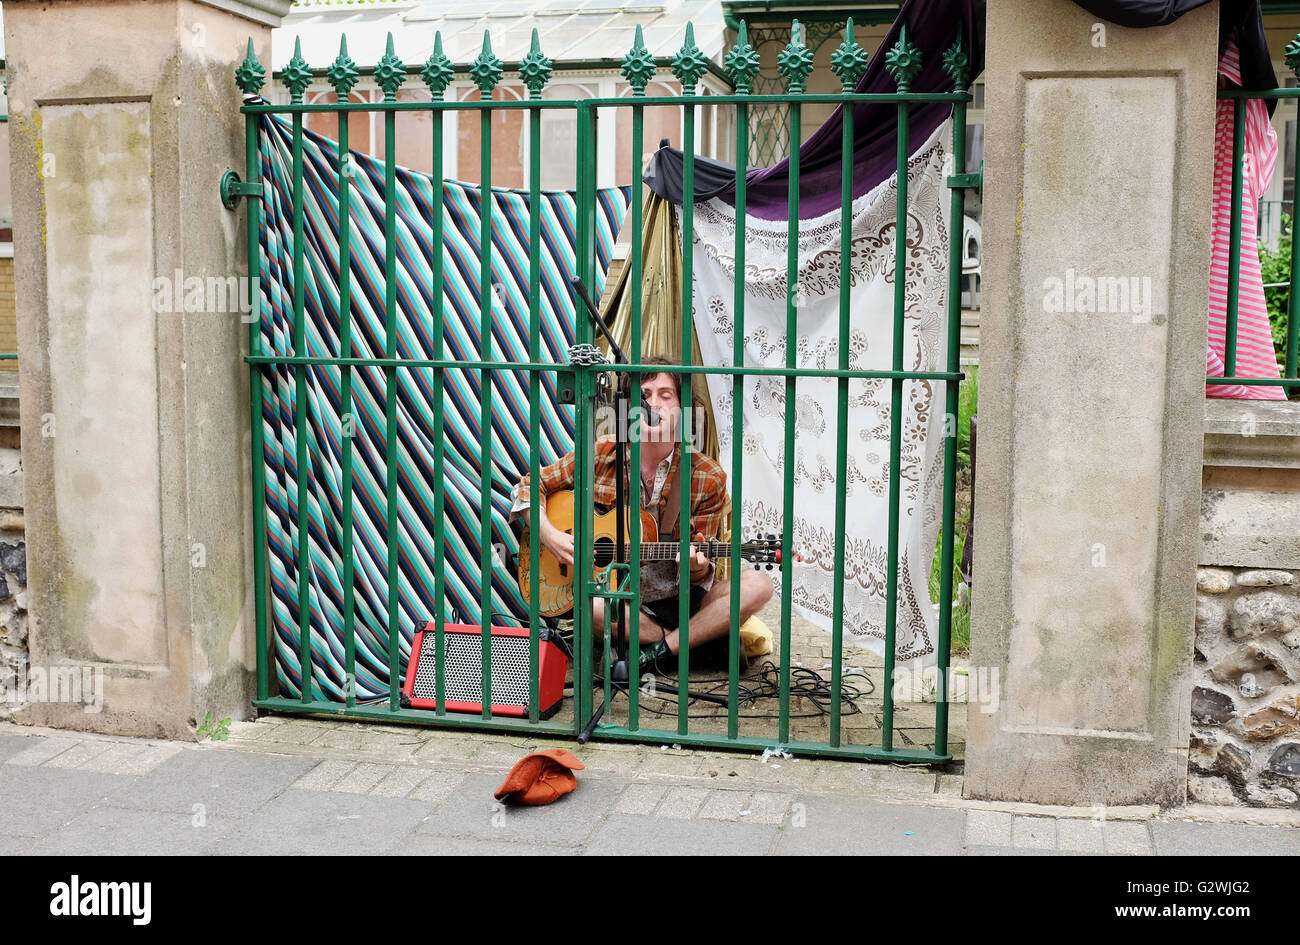 Brighton UK 4th June 2016 - An unusual busking singer guitarist performs behind a locked gate at Kemptown Carnival - Stock Image